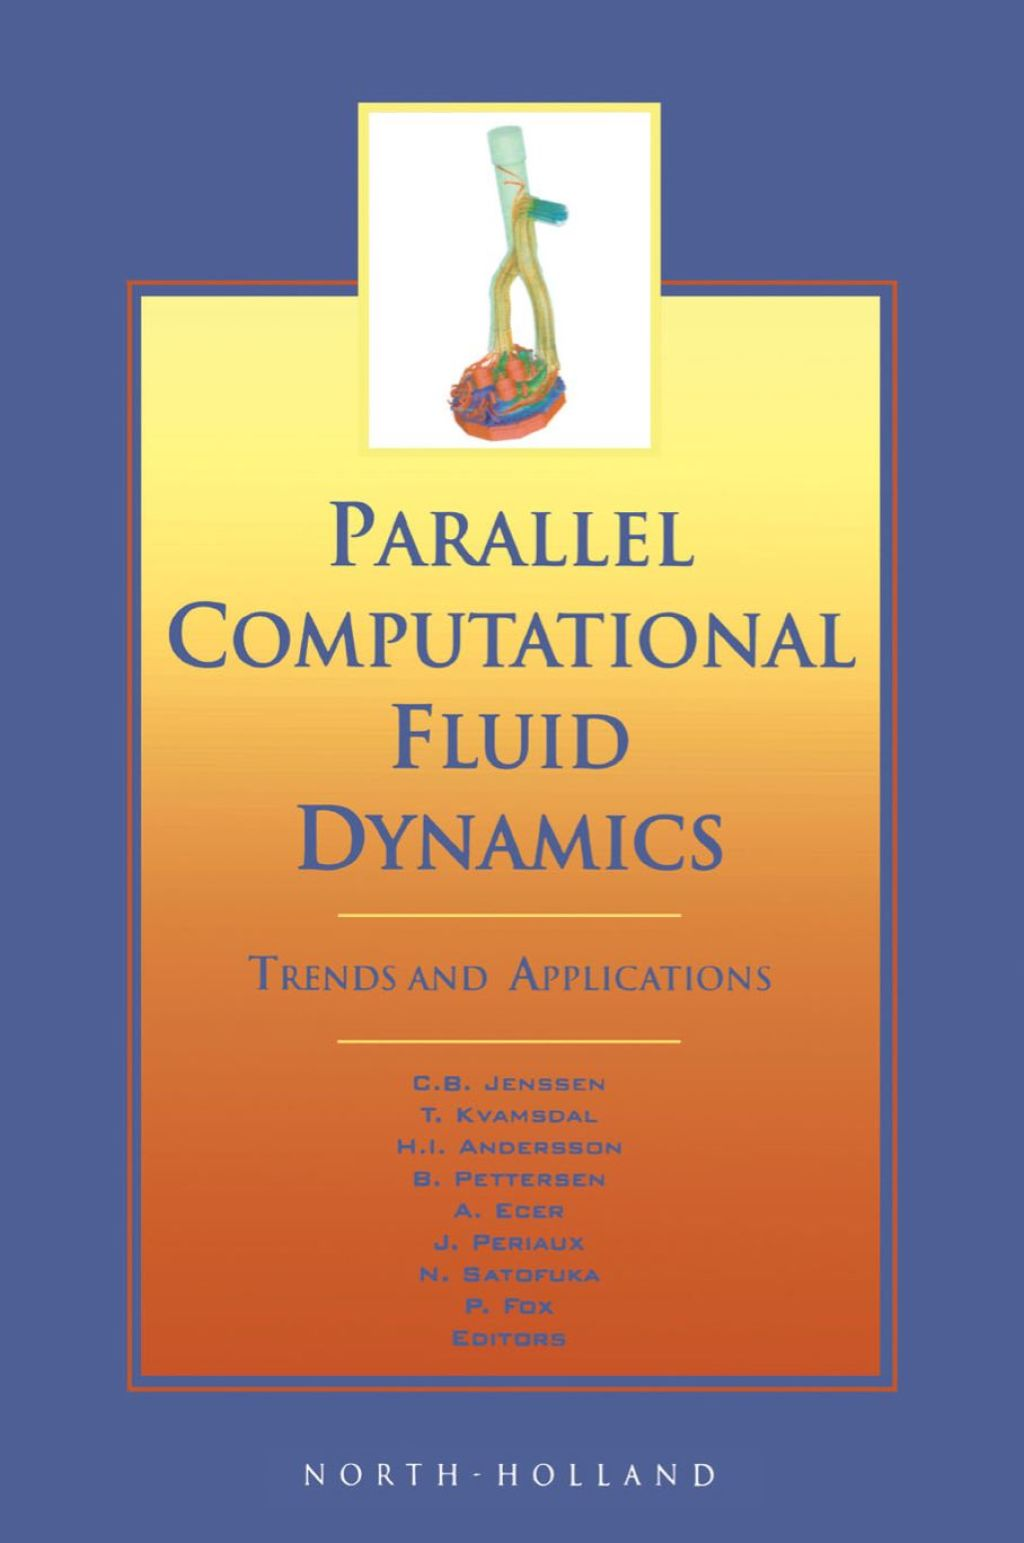 Parallel Computational Fluid Dynamics 2000: Trends and Applications (ebook) eBooks